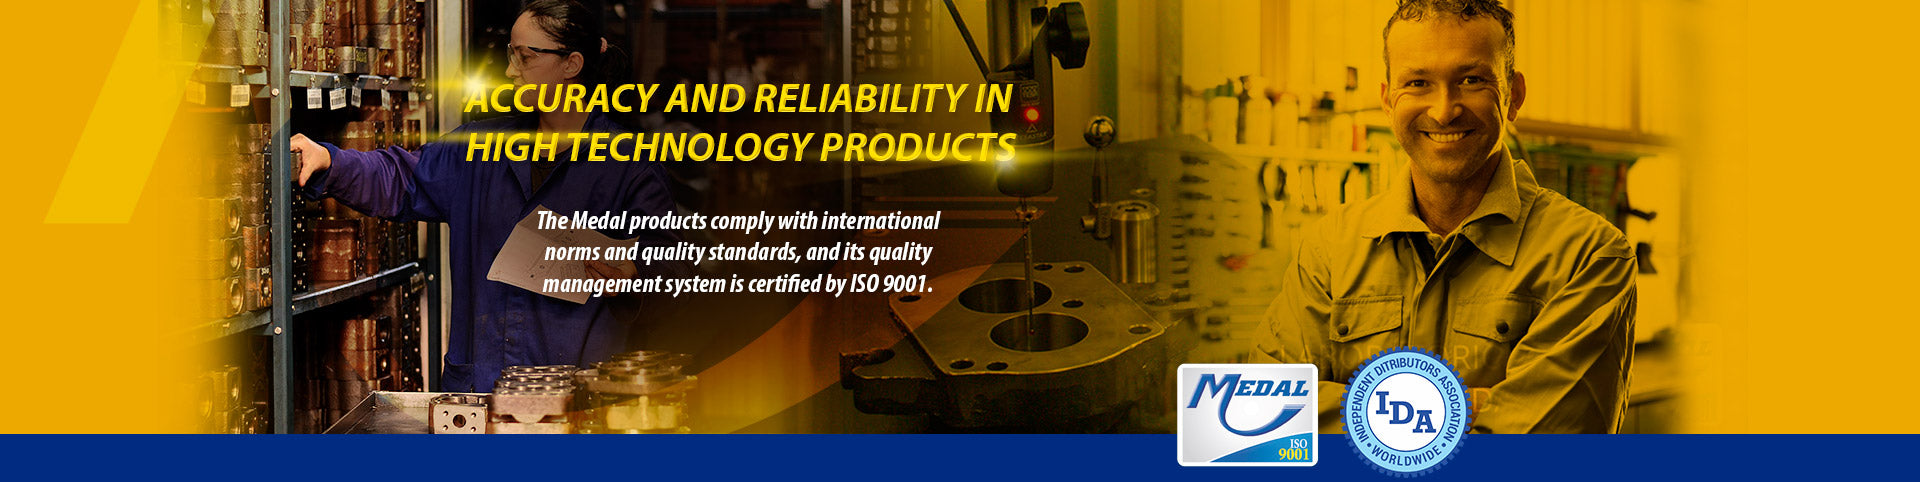 Accuracy and reliability in high technology products